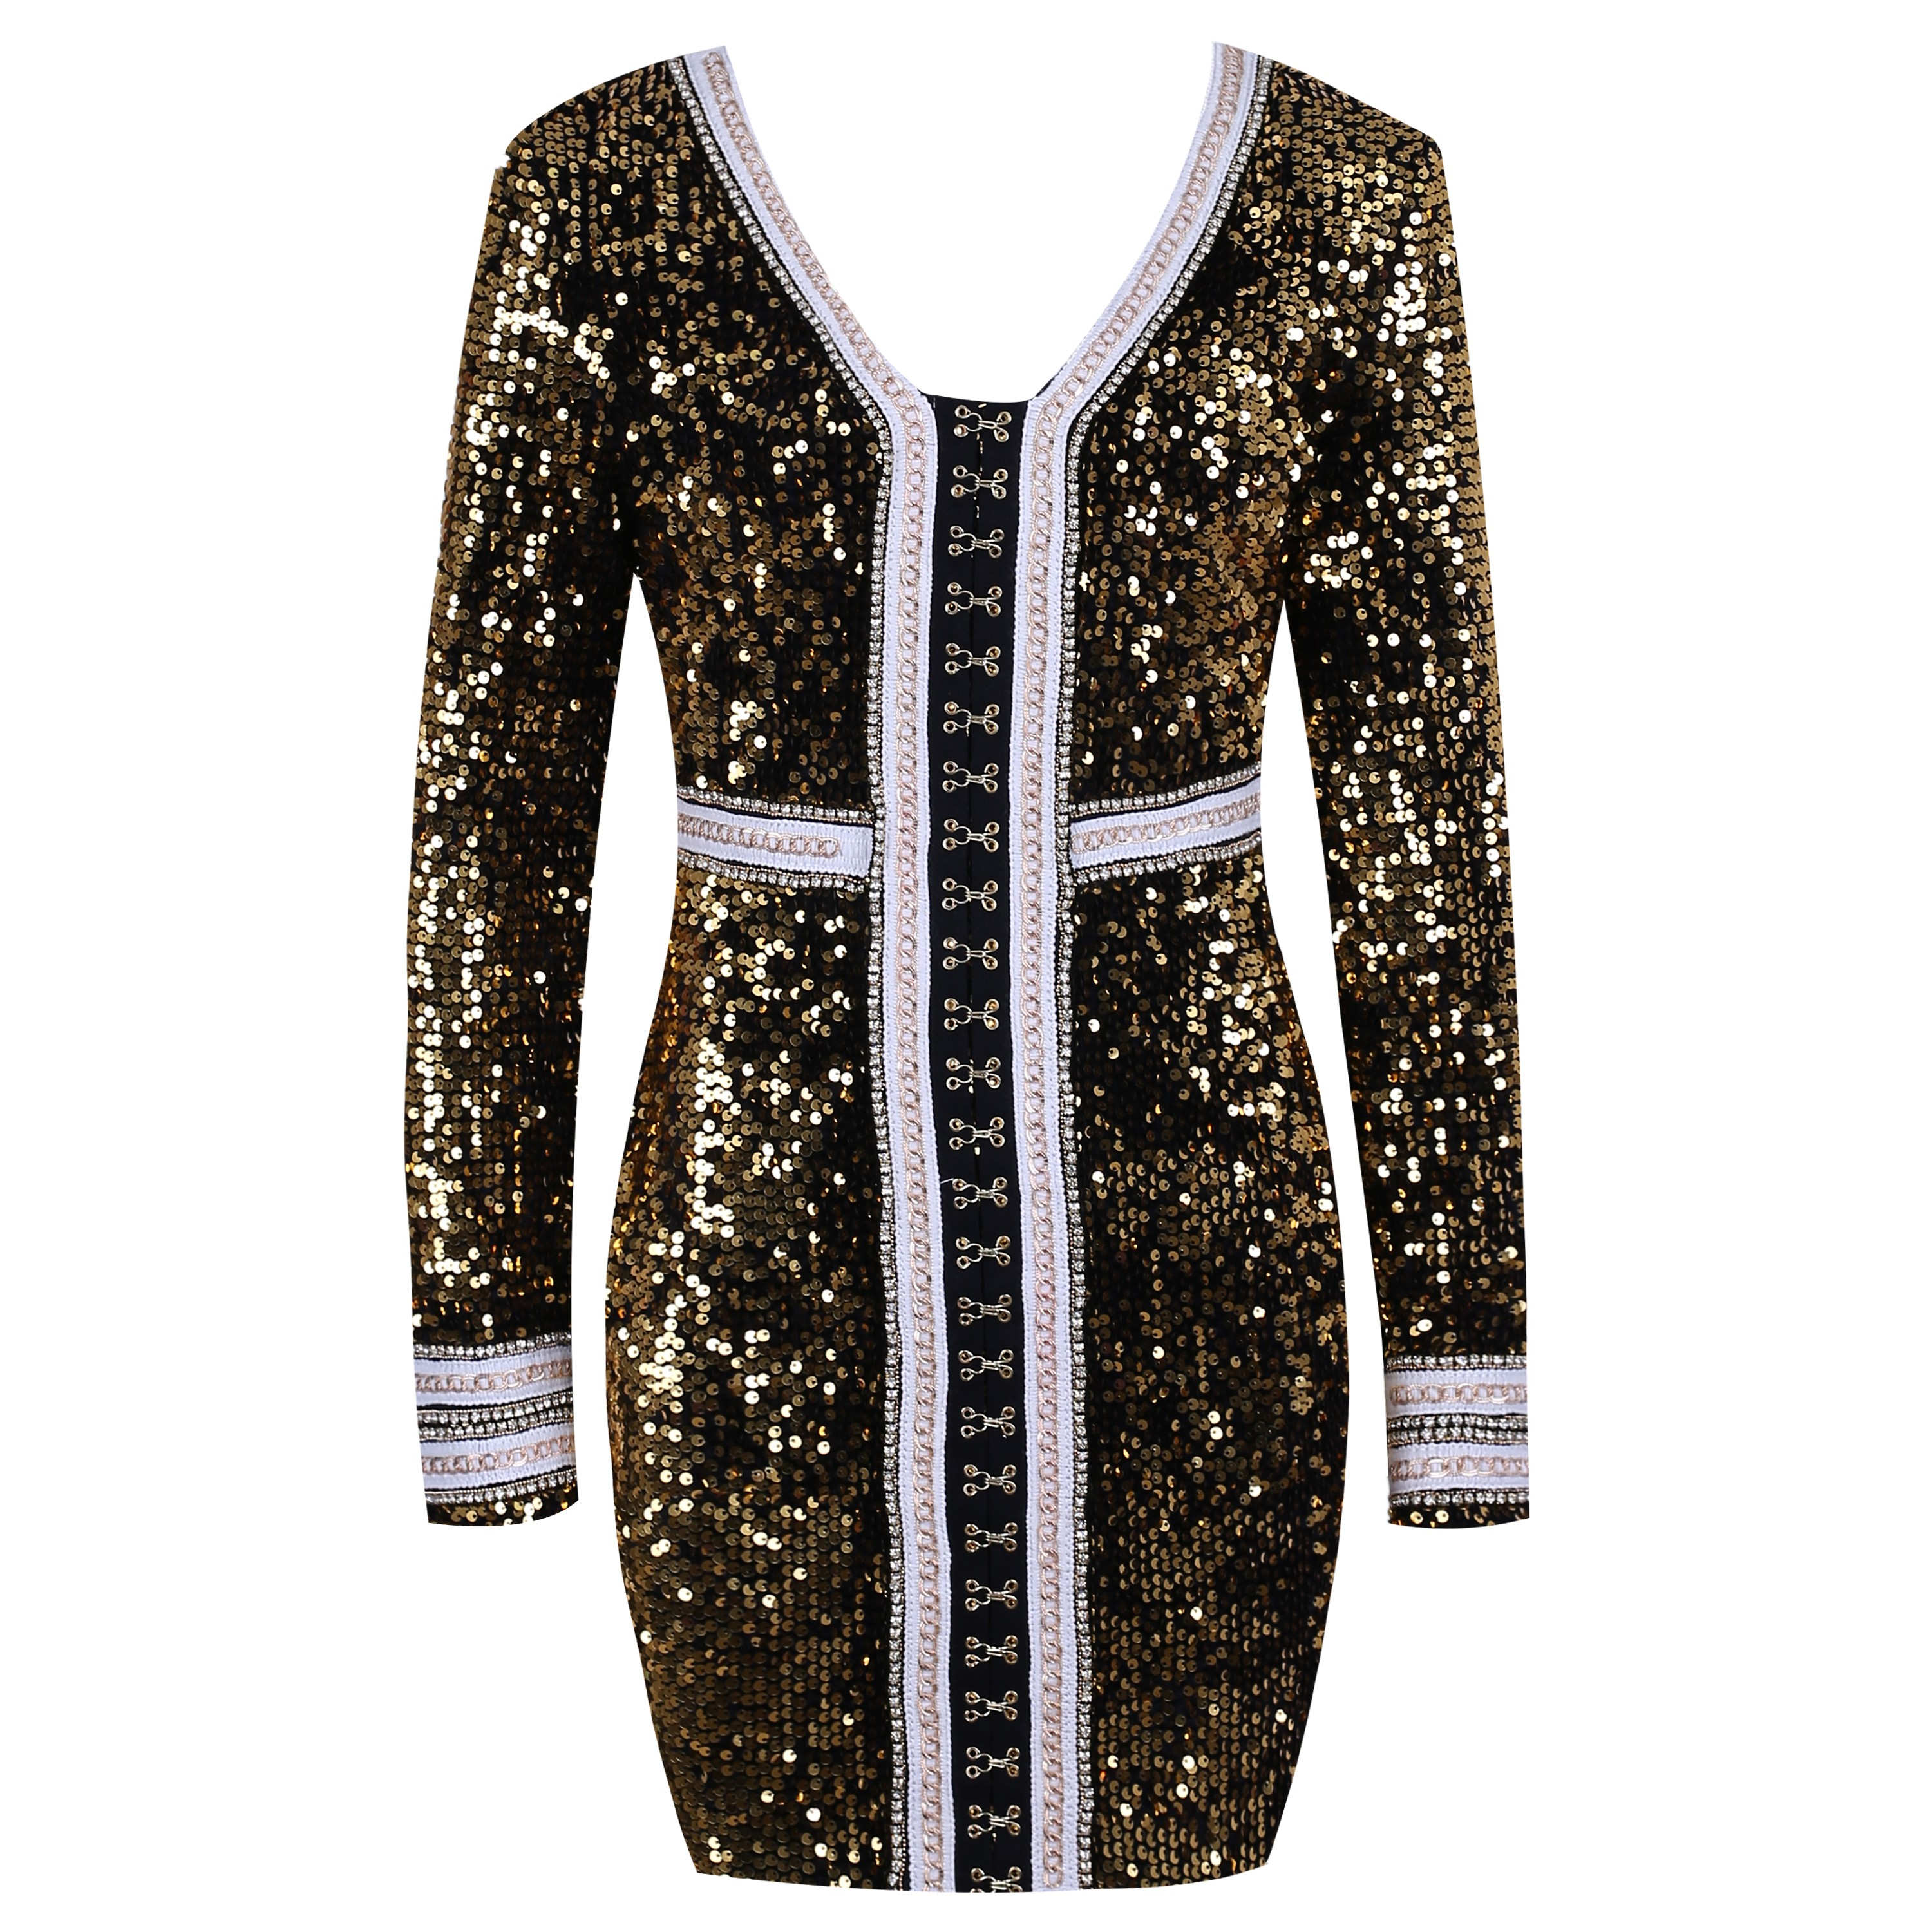 Gold V Neck Long Sleeve Mini Sequined Metal Embellished Newest Bodycon Dress HW240-Gold